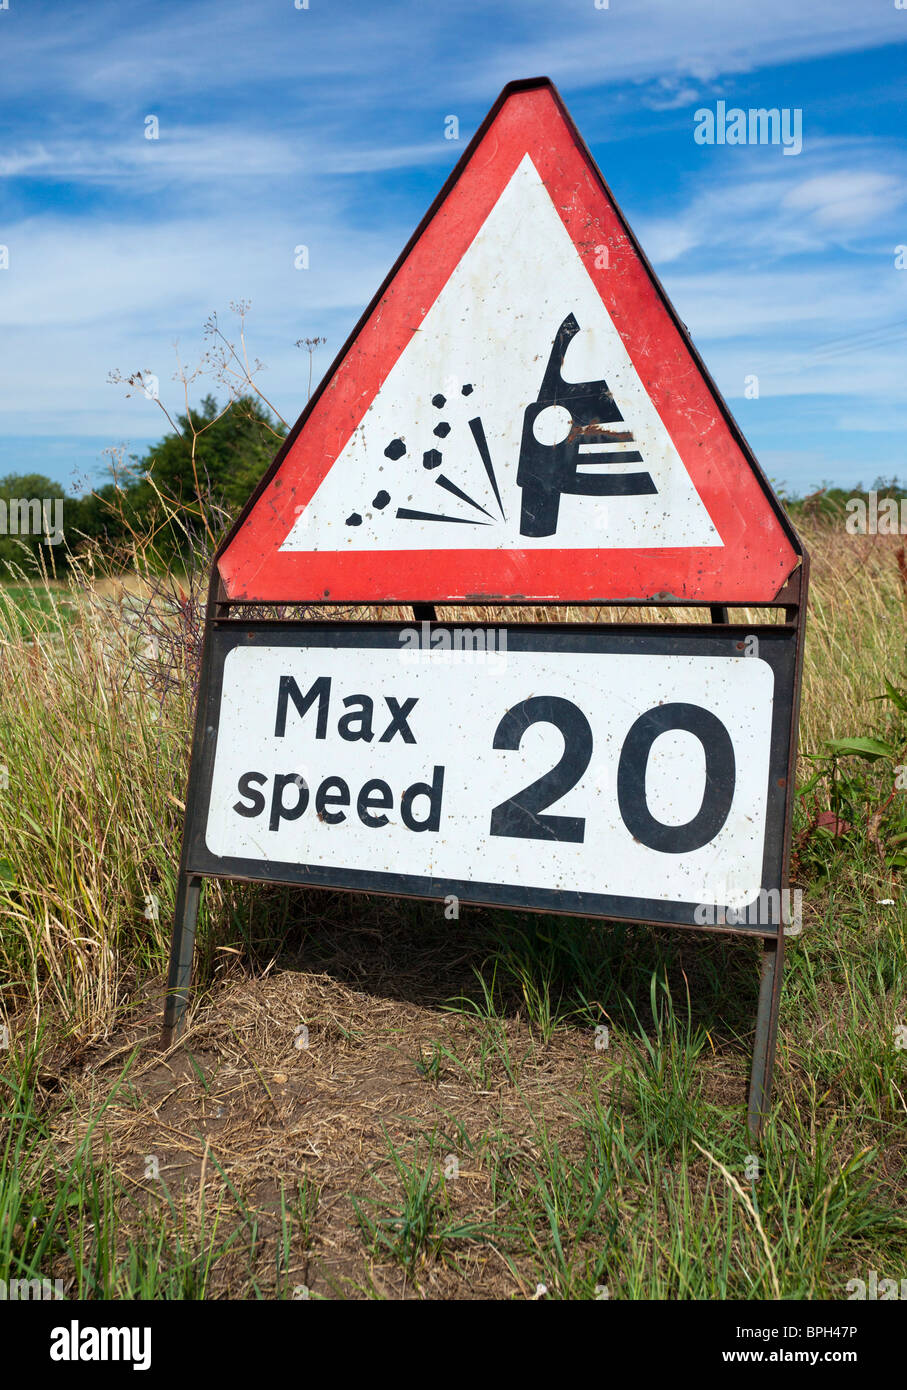 roadworks temporary speed limit sign - Stock Image